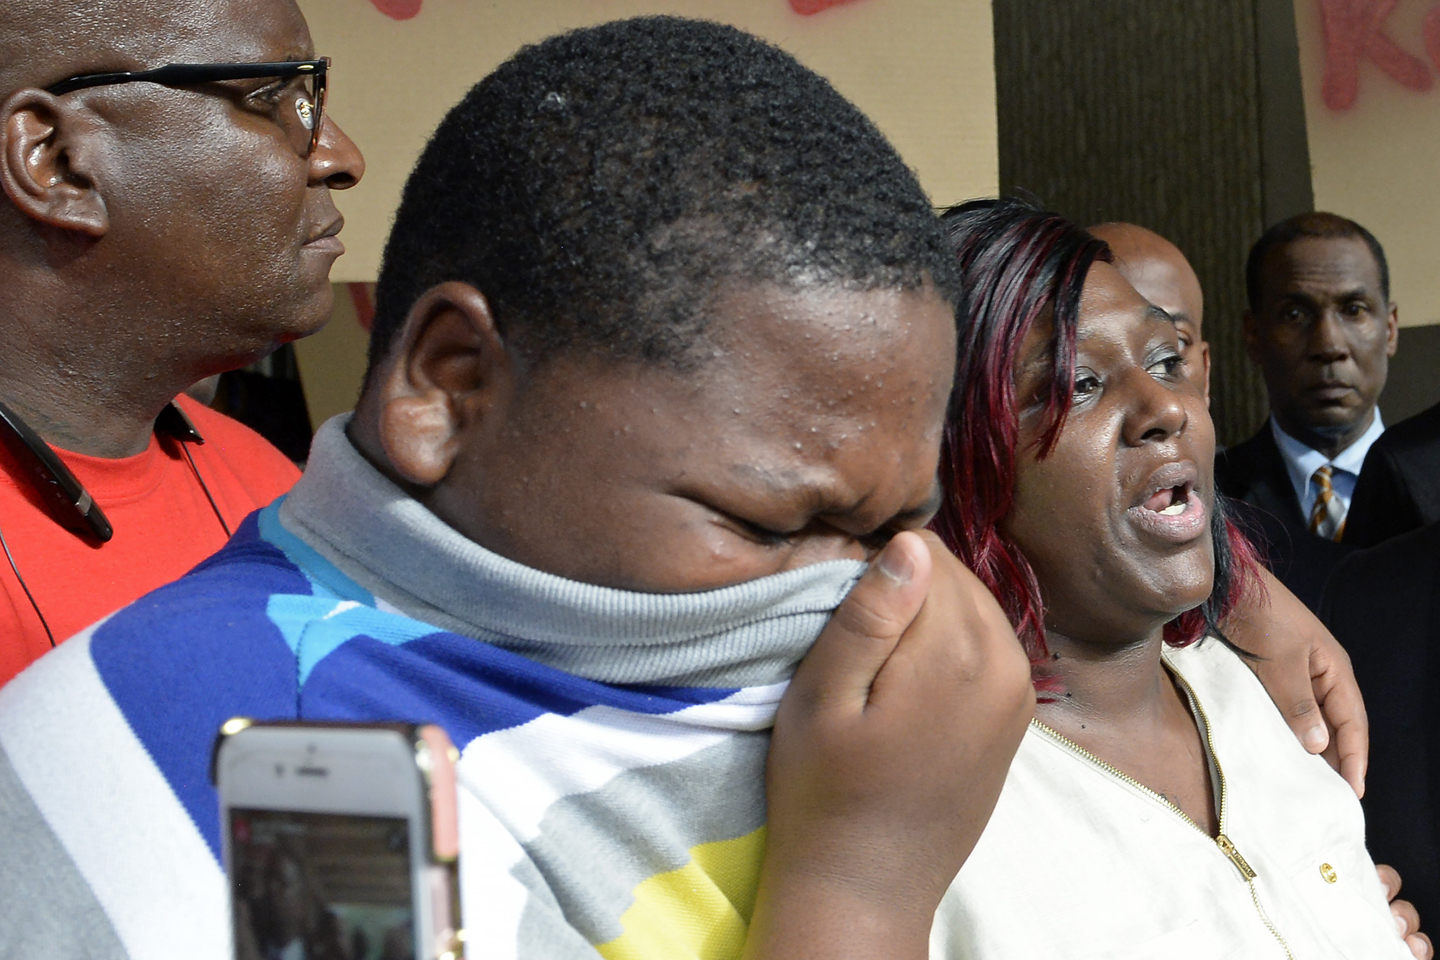 Cameron Sterling, left, Alton Sterling's son, cries, as his mother Quinyetta McMillan speaks about the shooting of Alton Sterling during a press conference and protest at city hall Wednesday, July 6, 2016.